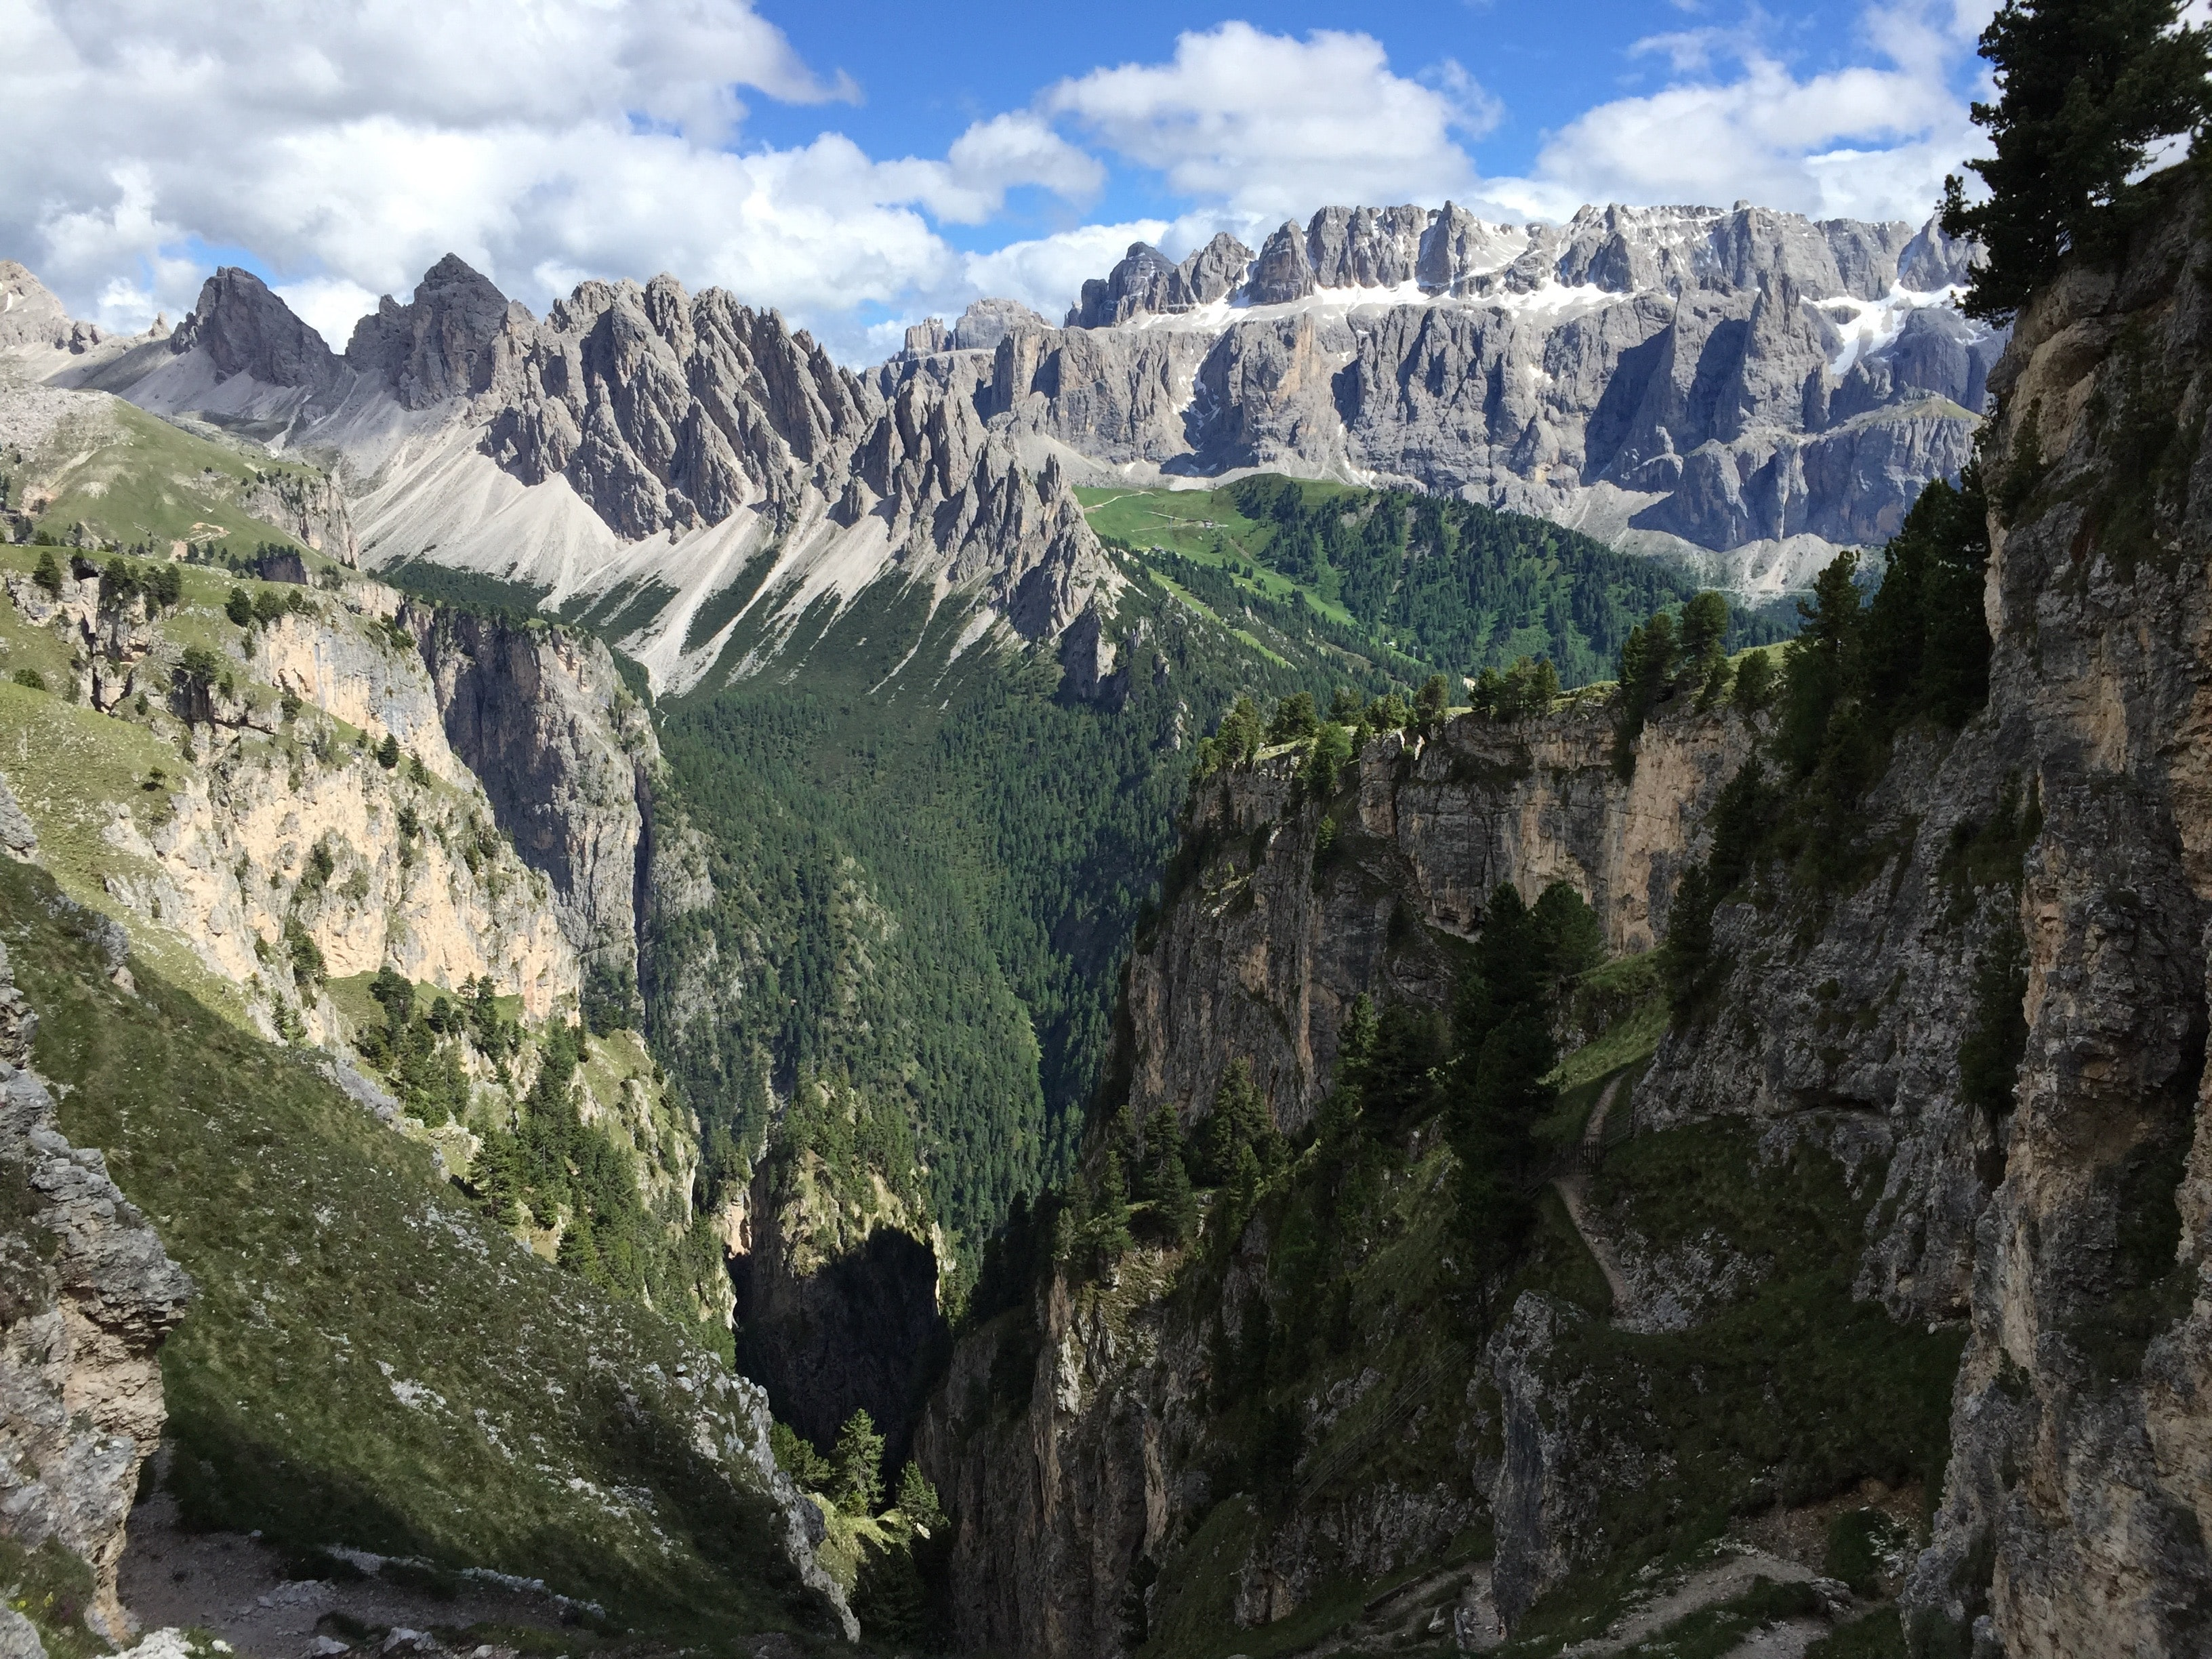 A deep gorge among tall jagged mountains